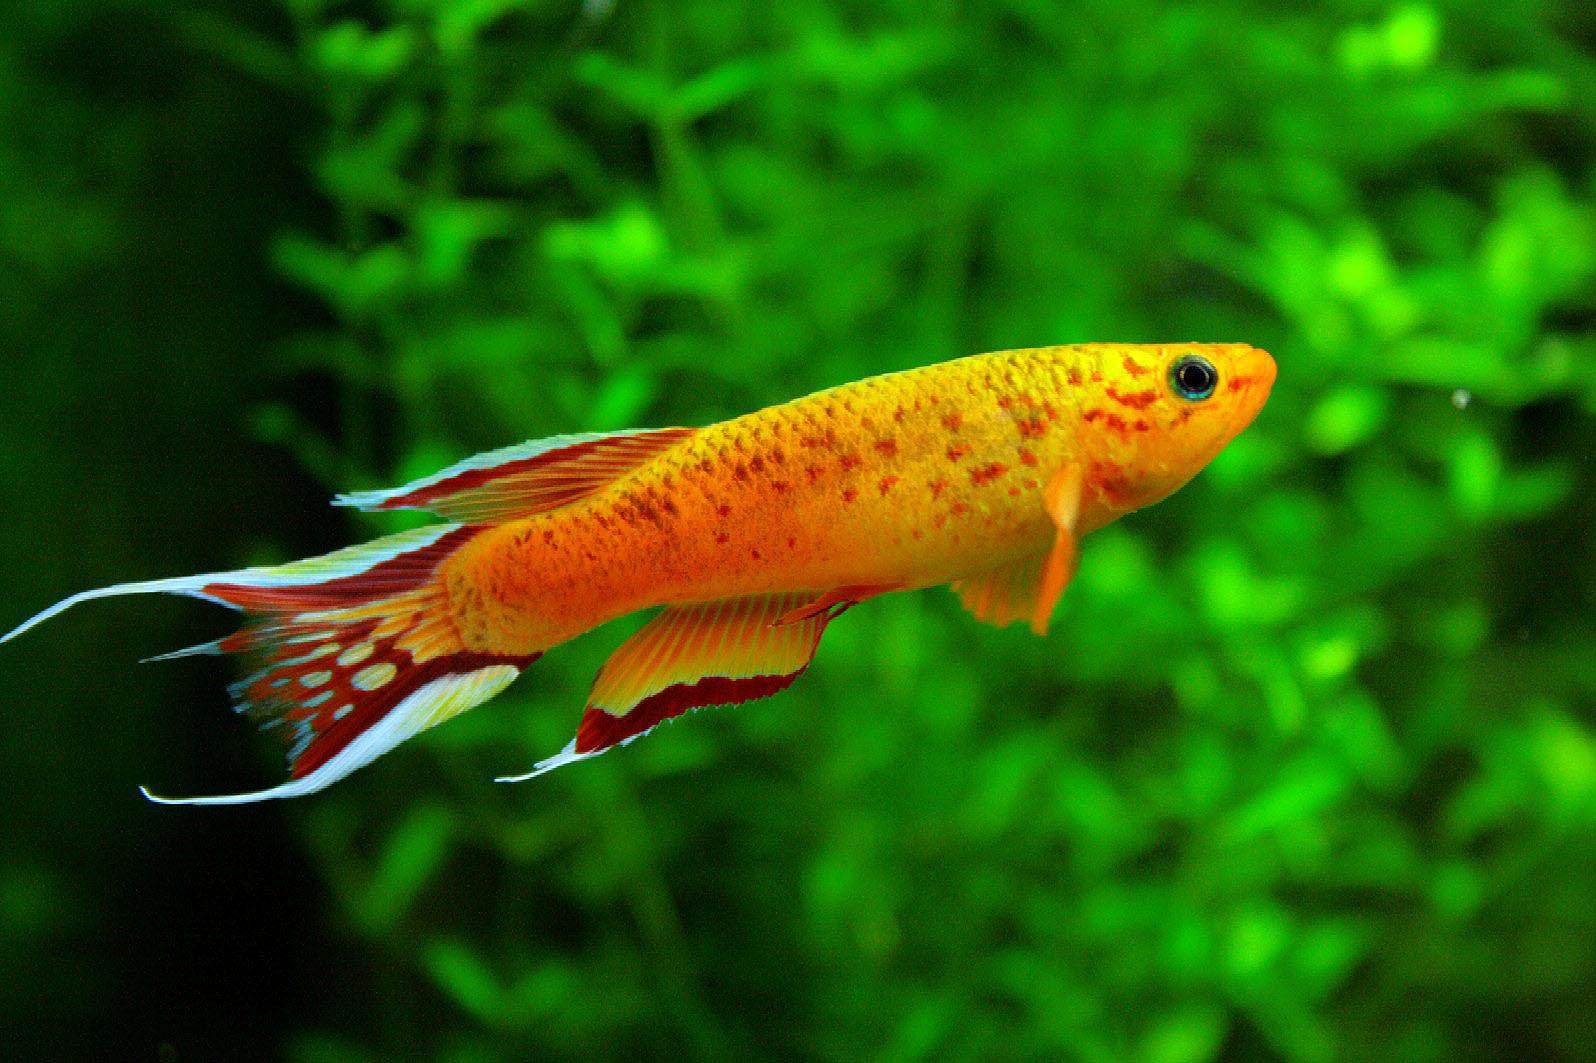 Freshwater aquarium exotic fish aquarium design ideas for What fish is this